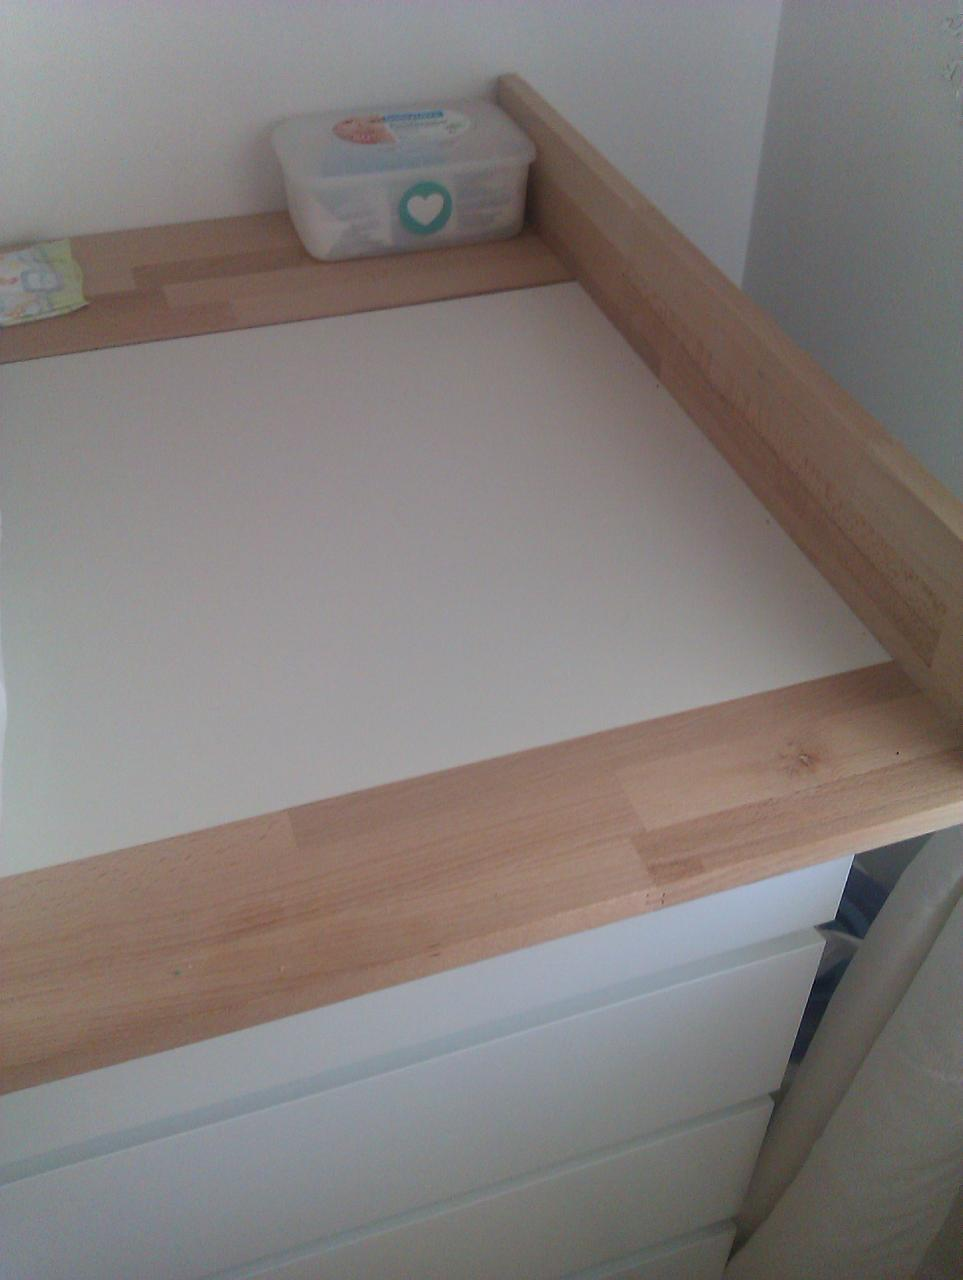 ikea malm kommode als wickeltisch - babyforum.at